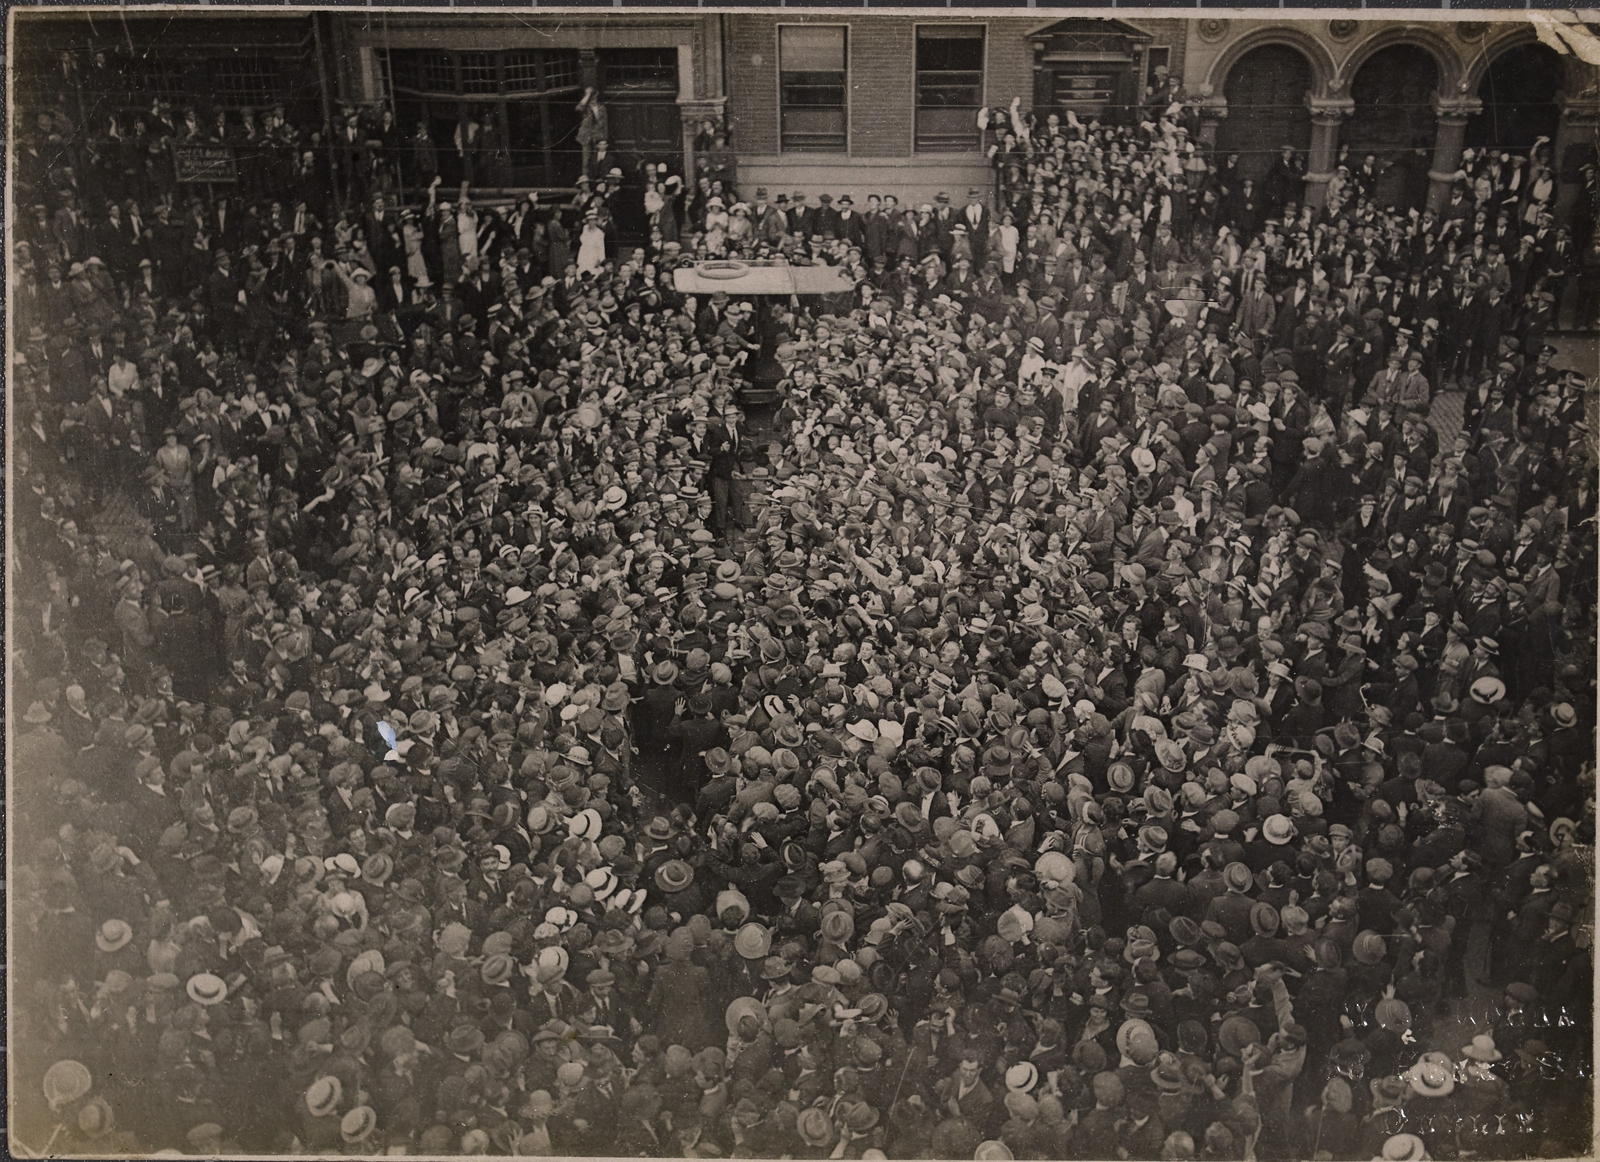 Image - The scenes outside the Mansion House in the days after the Truce were like a combination of film premiere and political rally. (Credit: National Library of Ireland)